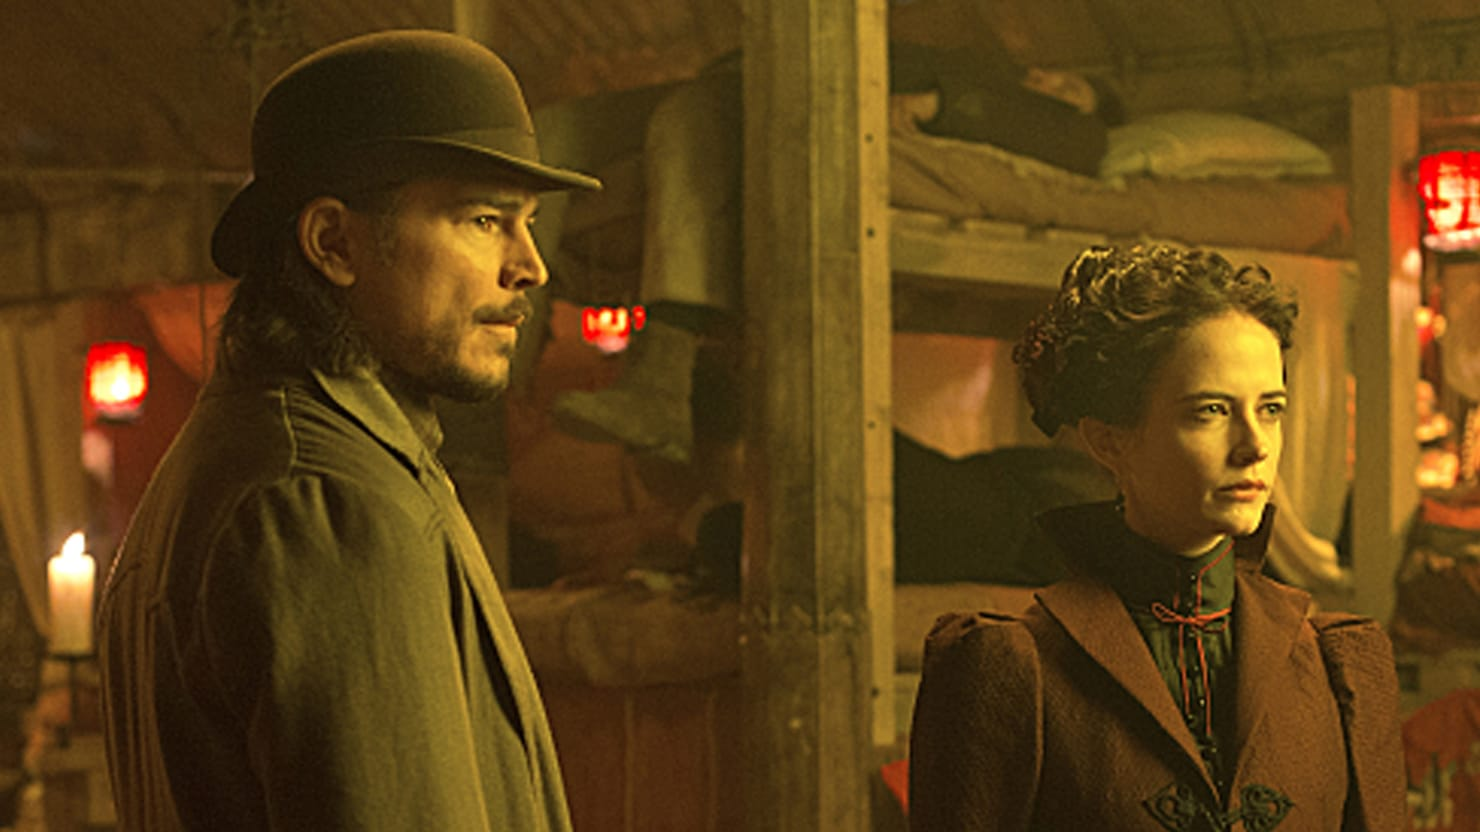 'Penny Dreadful' Is a Shameless Orgy of Blood, Gore, and Scary Fun